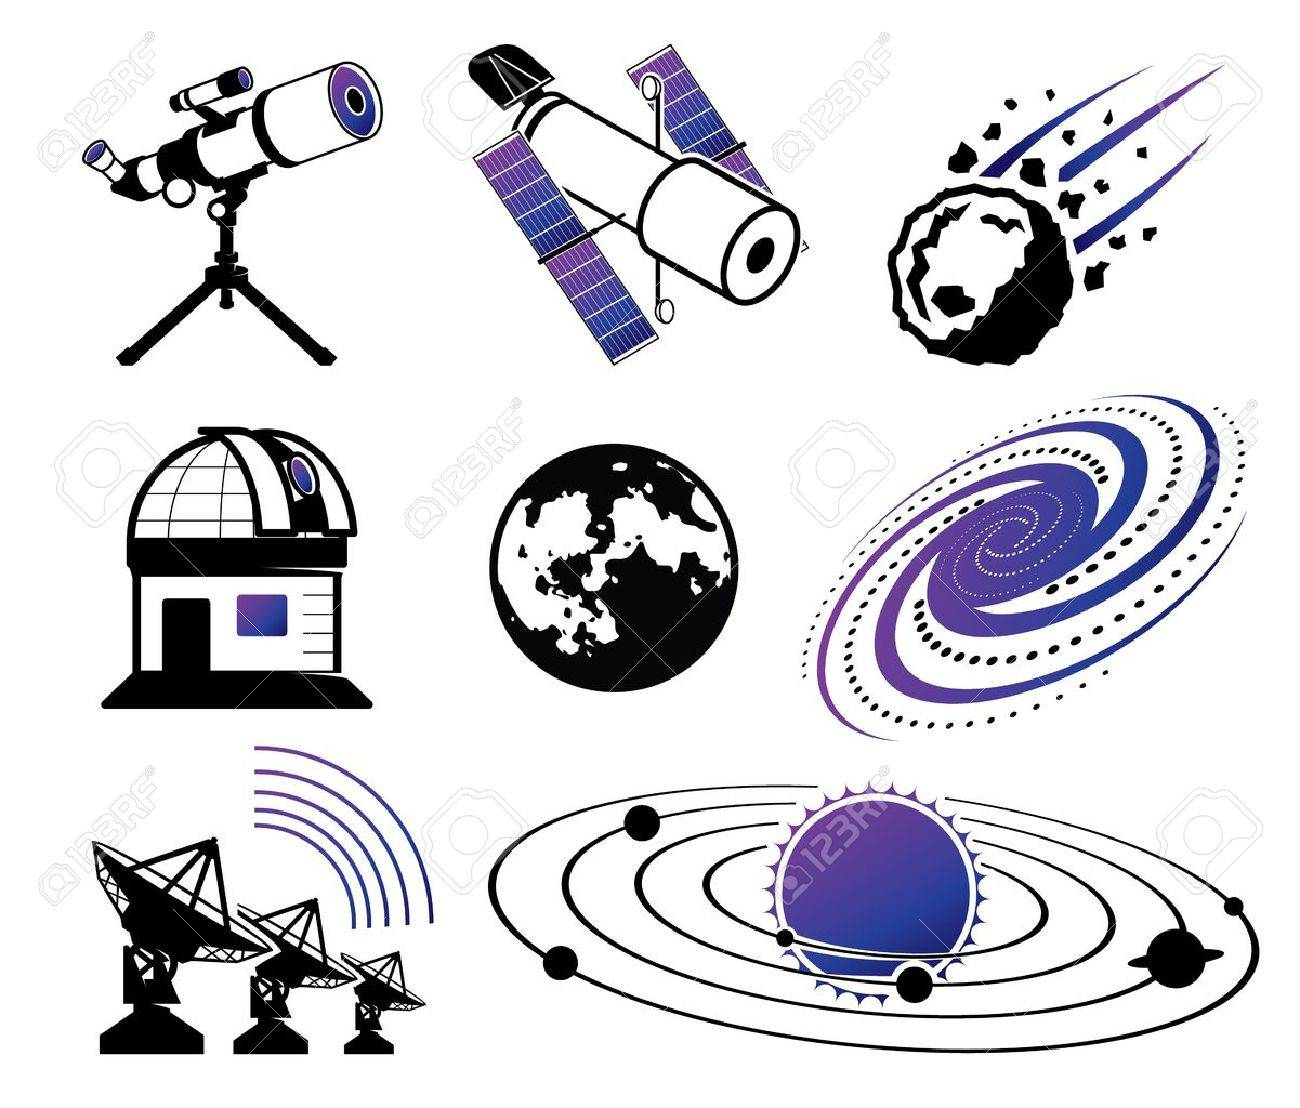 Astronautics and Space Icons; science and technology elements - 20654523